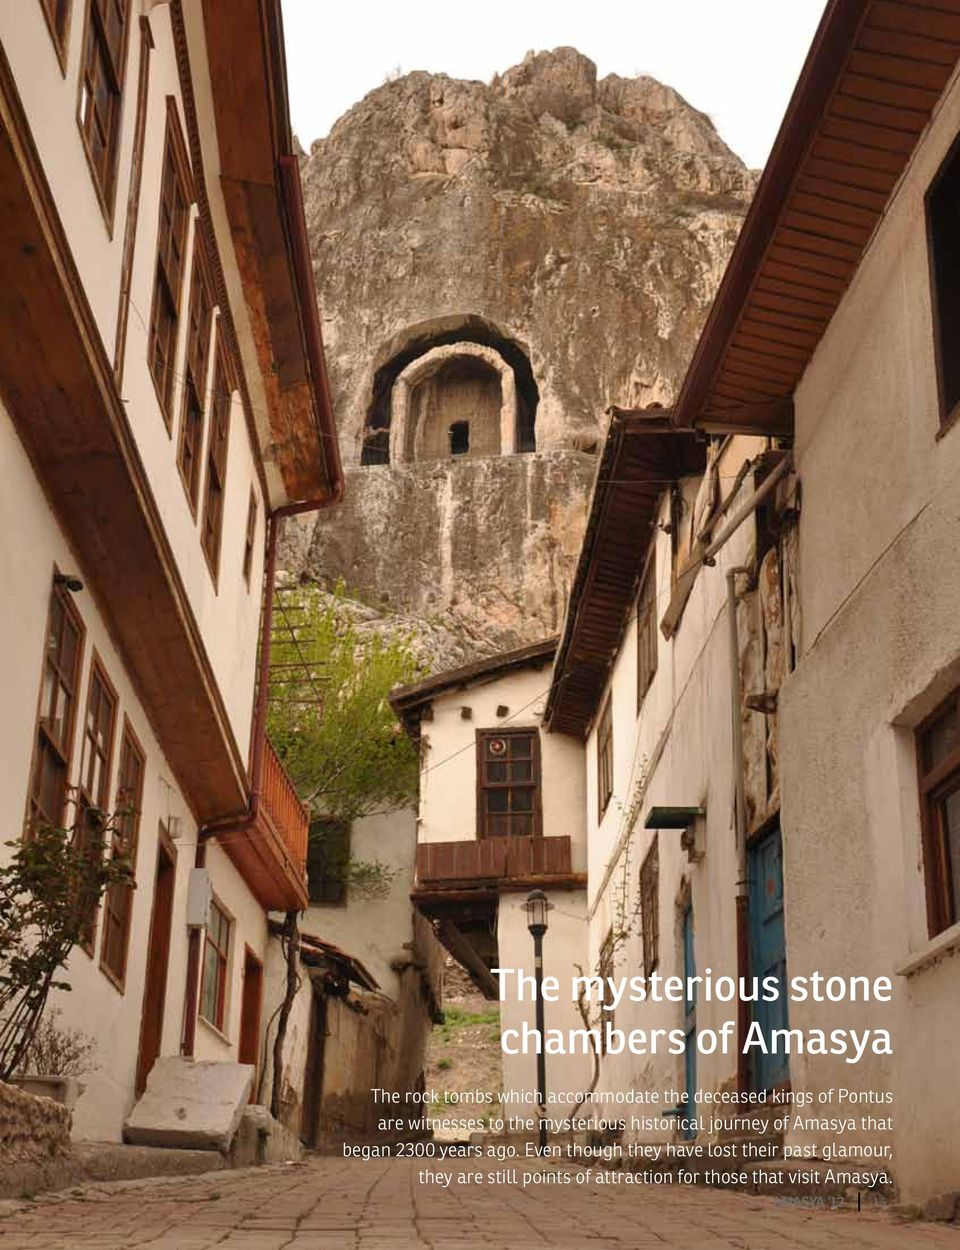 Amasya that began 2300 years ago.